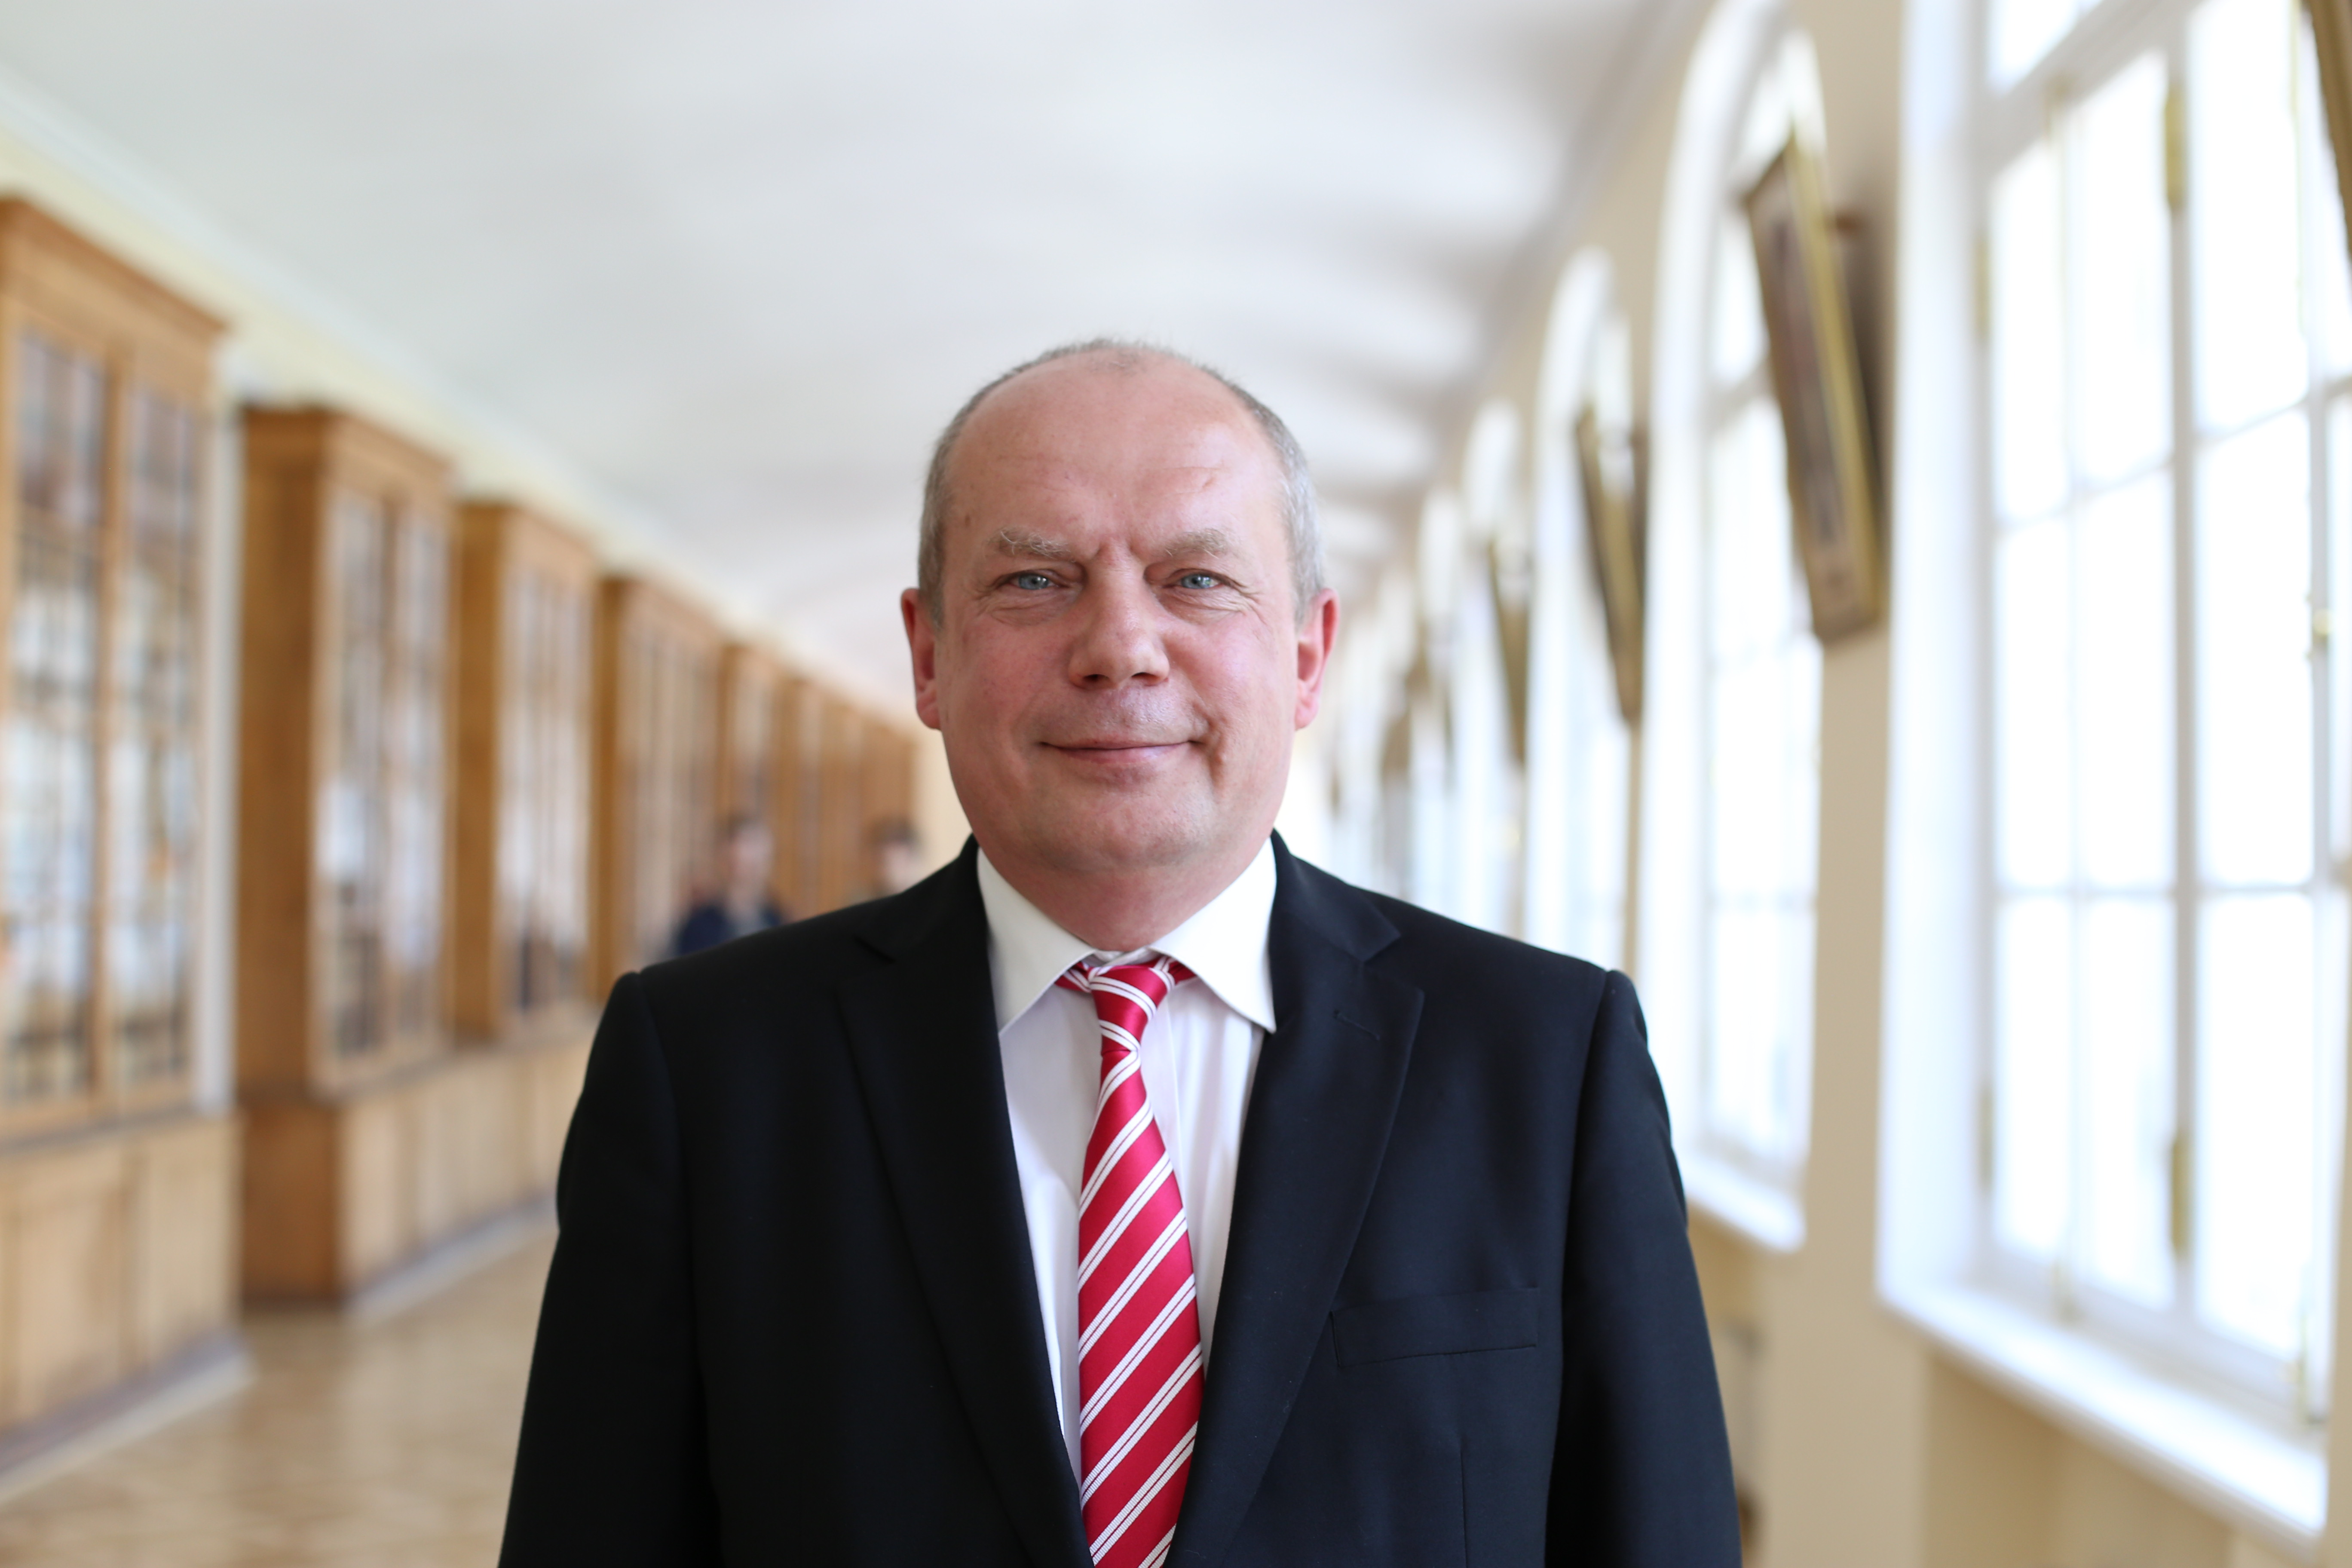 St. Petersburg University's Vice-Rector for Research, Sergei Allonov.